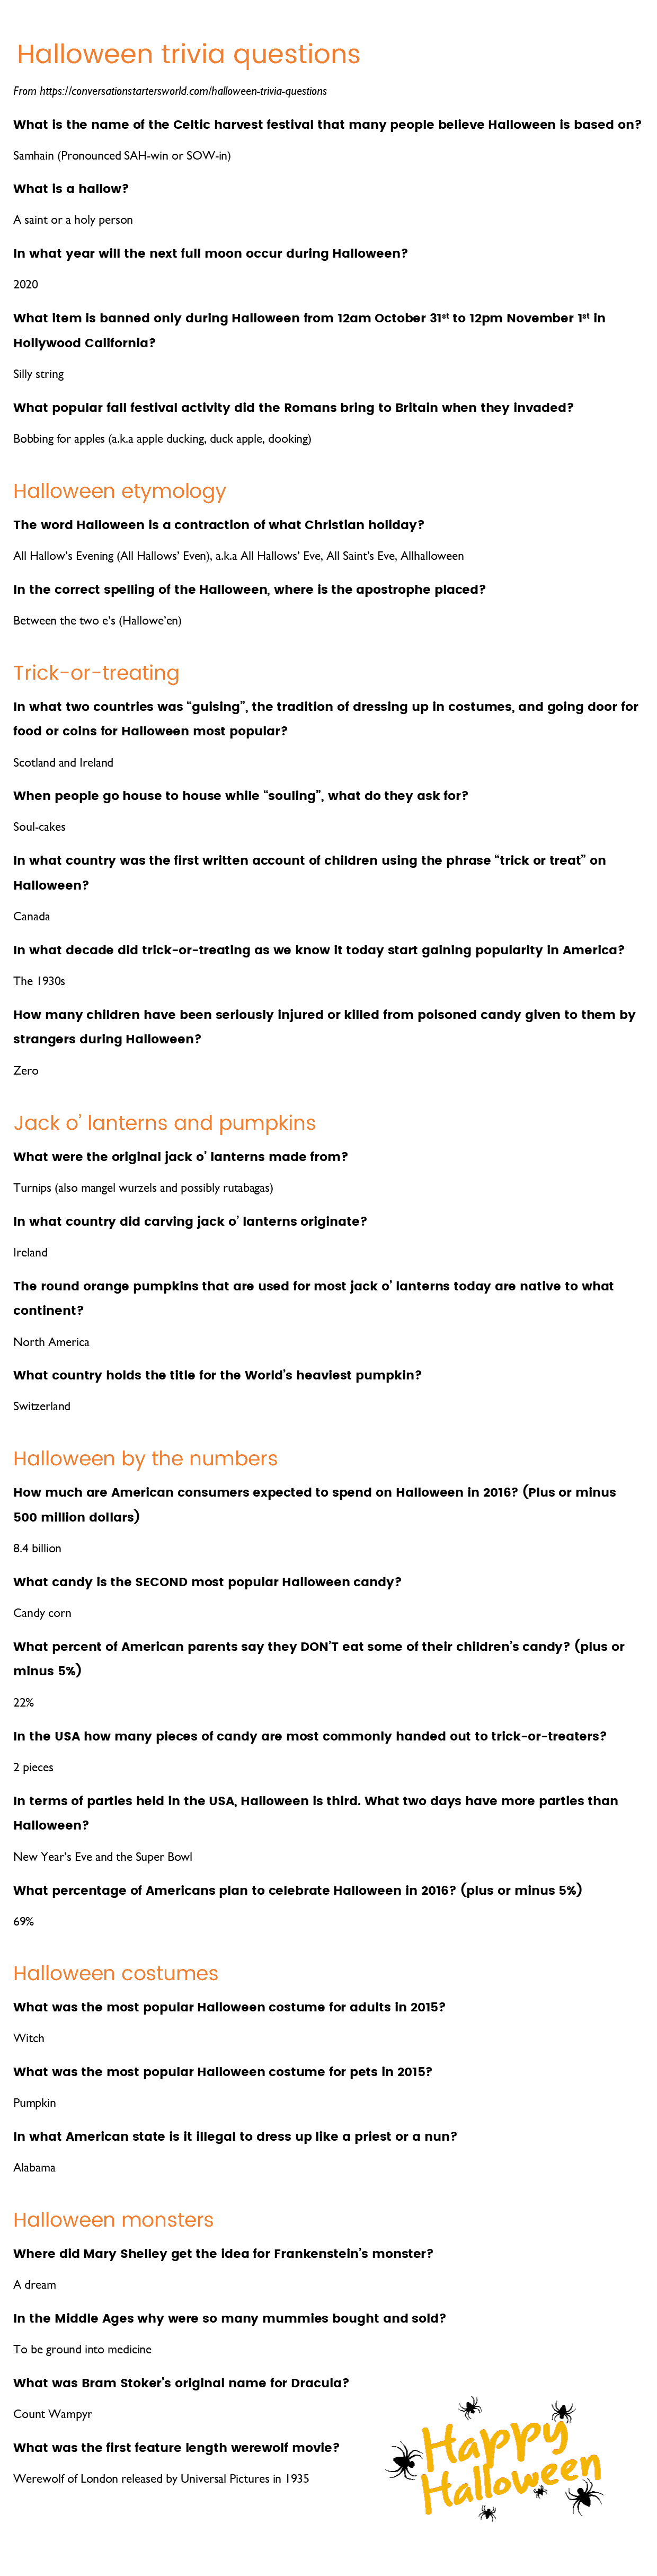 29 Challenging Halloween Trivia Questions - How Many Can You Answer? - Halloween Trivia Questions And Answers Free Printable